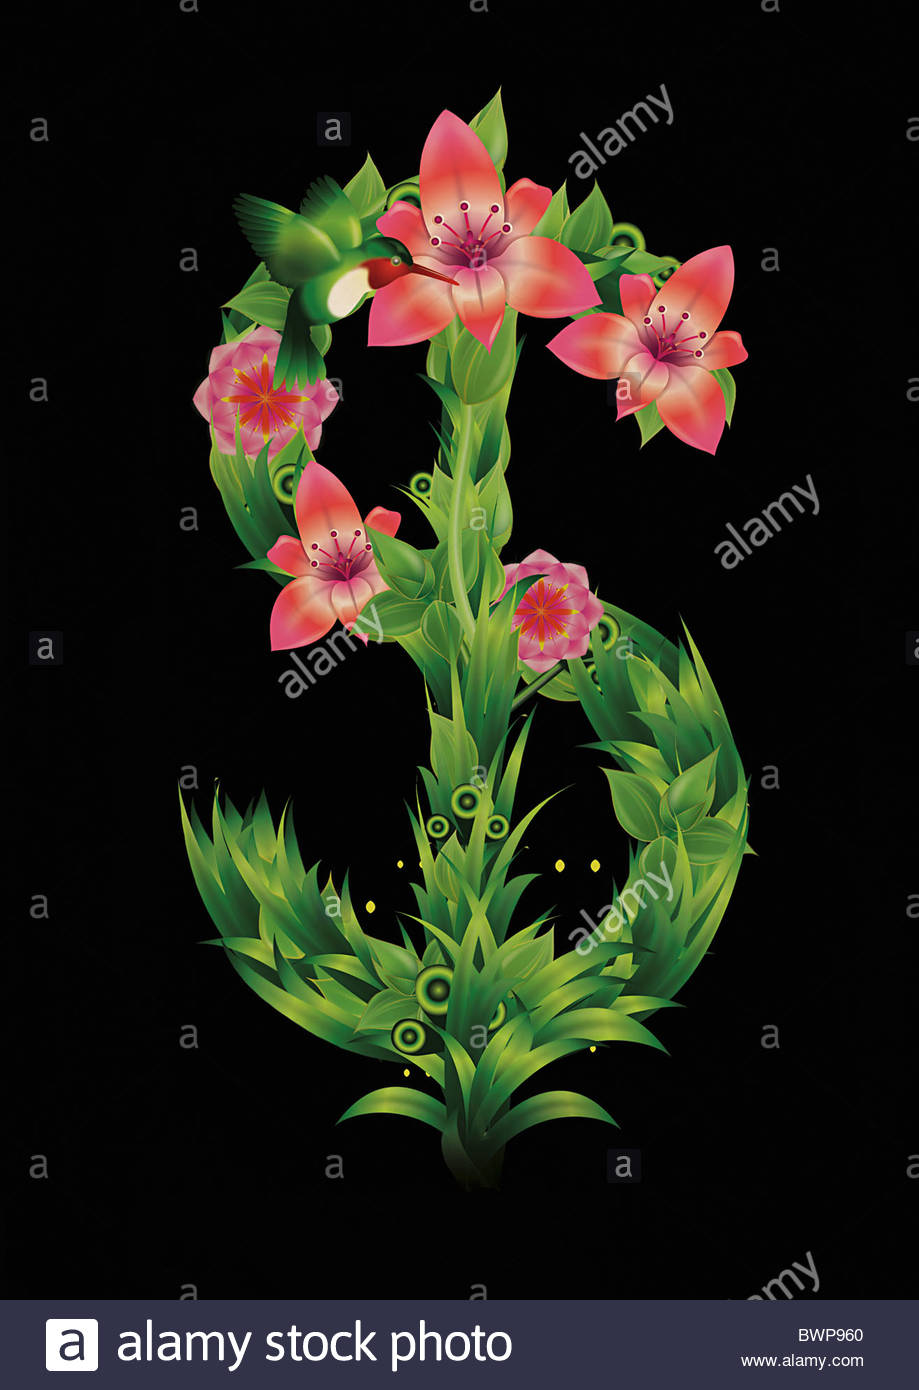 Blooming [dollar sign] simbolo Immagini Stock